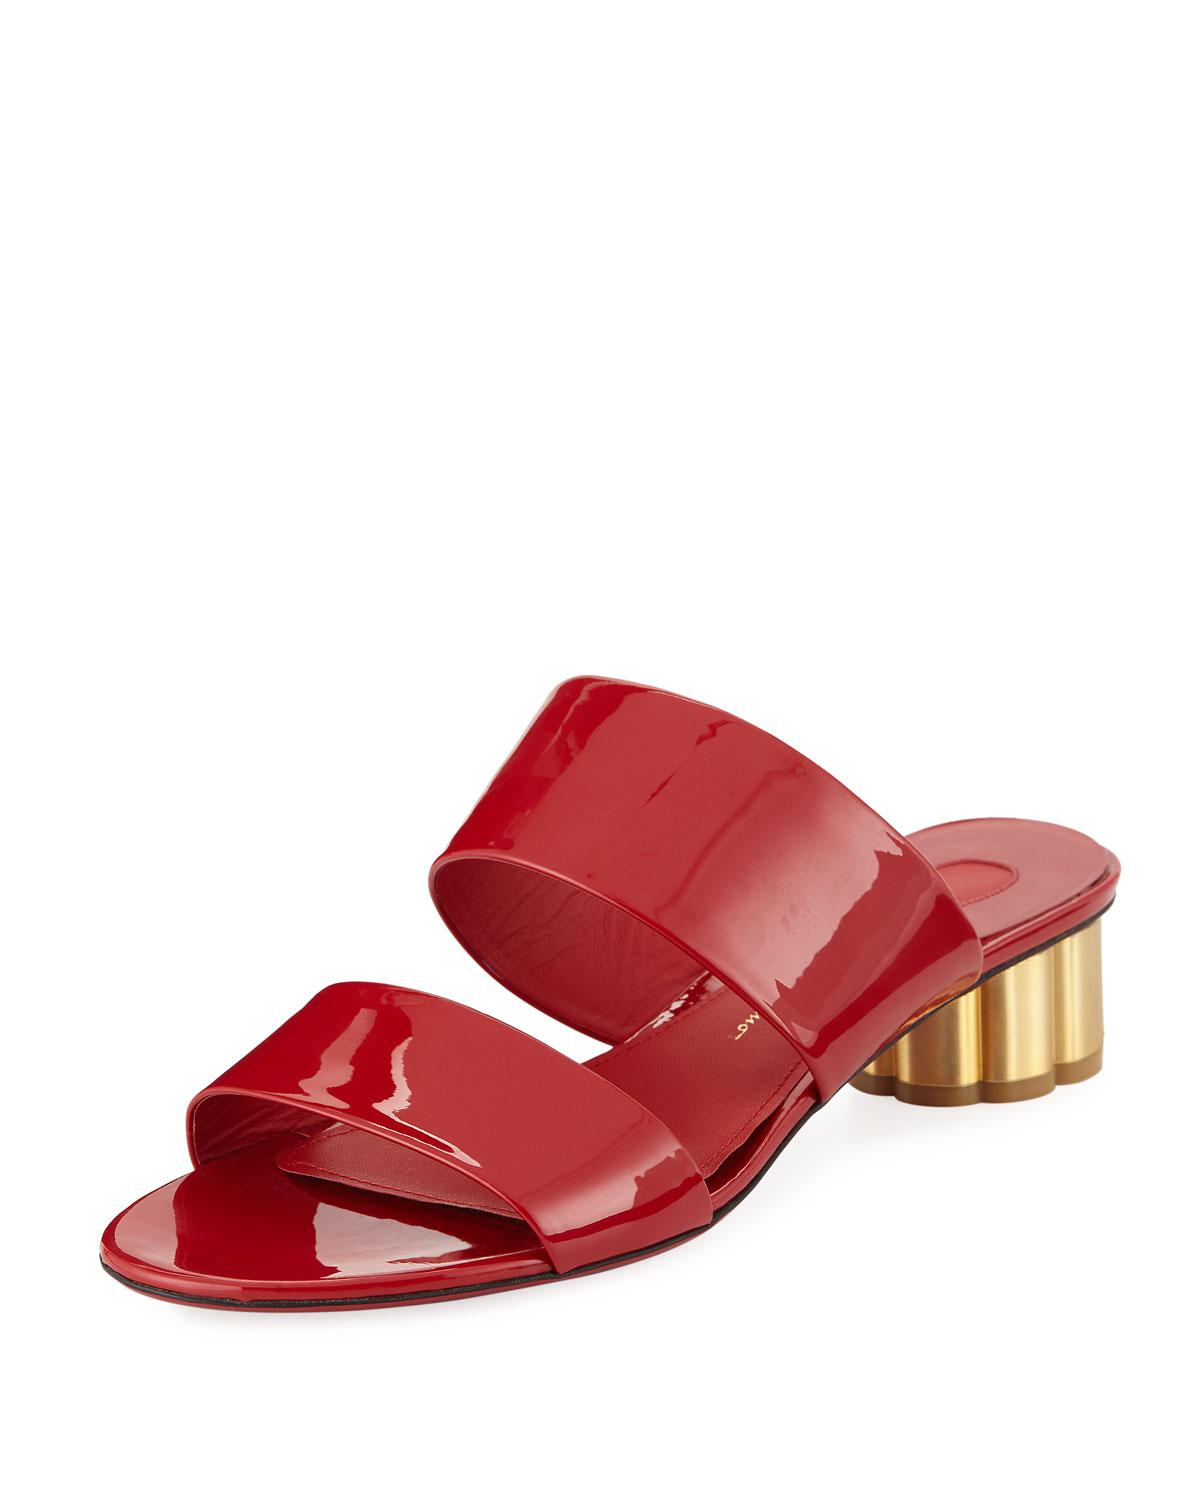 4afcf929f4bb Ferragamo. Women s Red Belluno Two-band Patent Slide Sandals With Flower  Heel